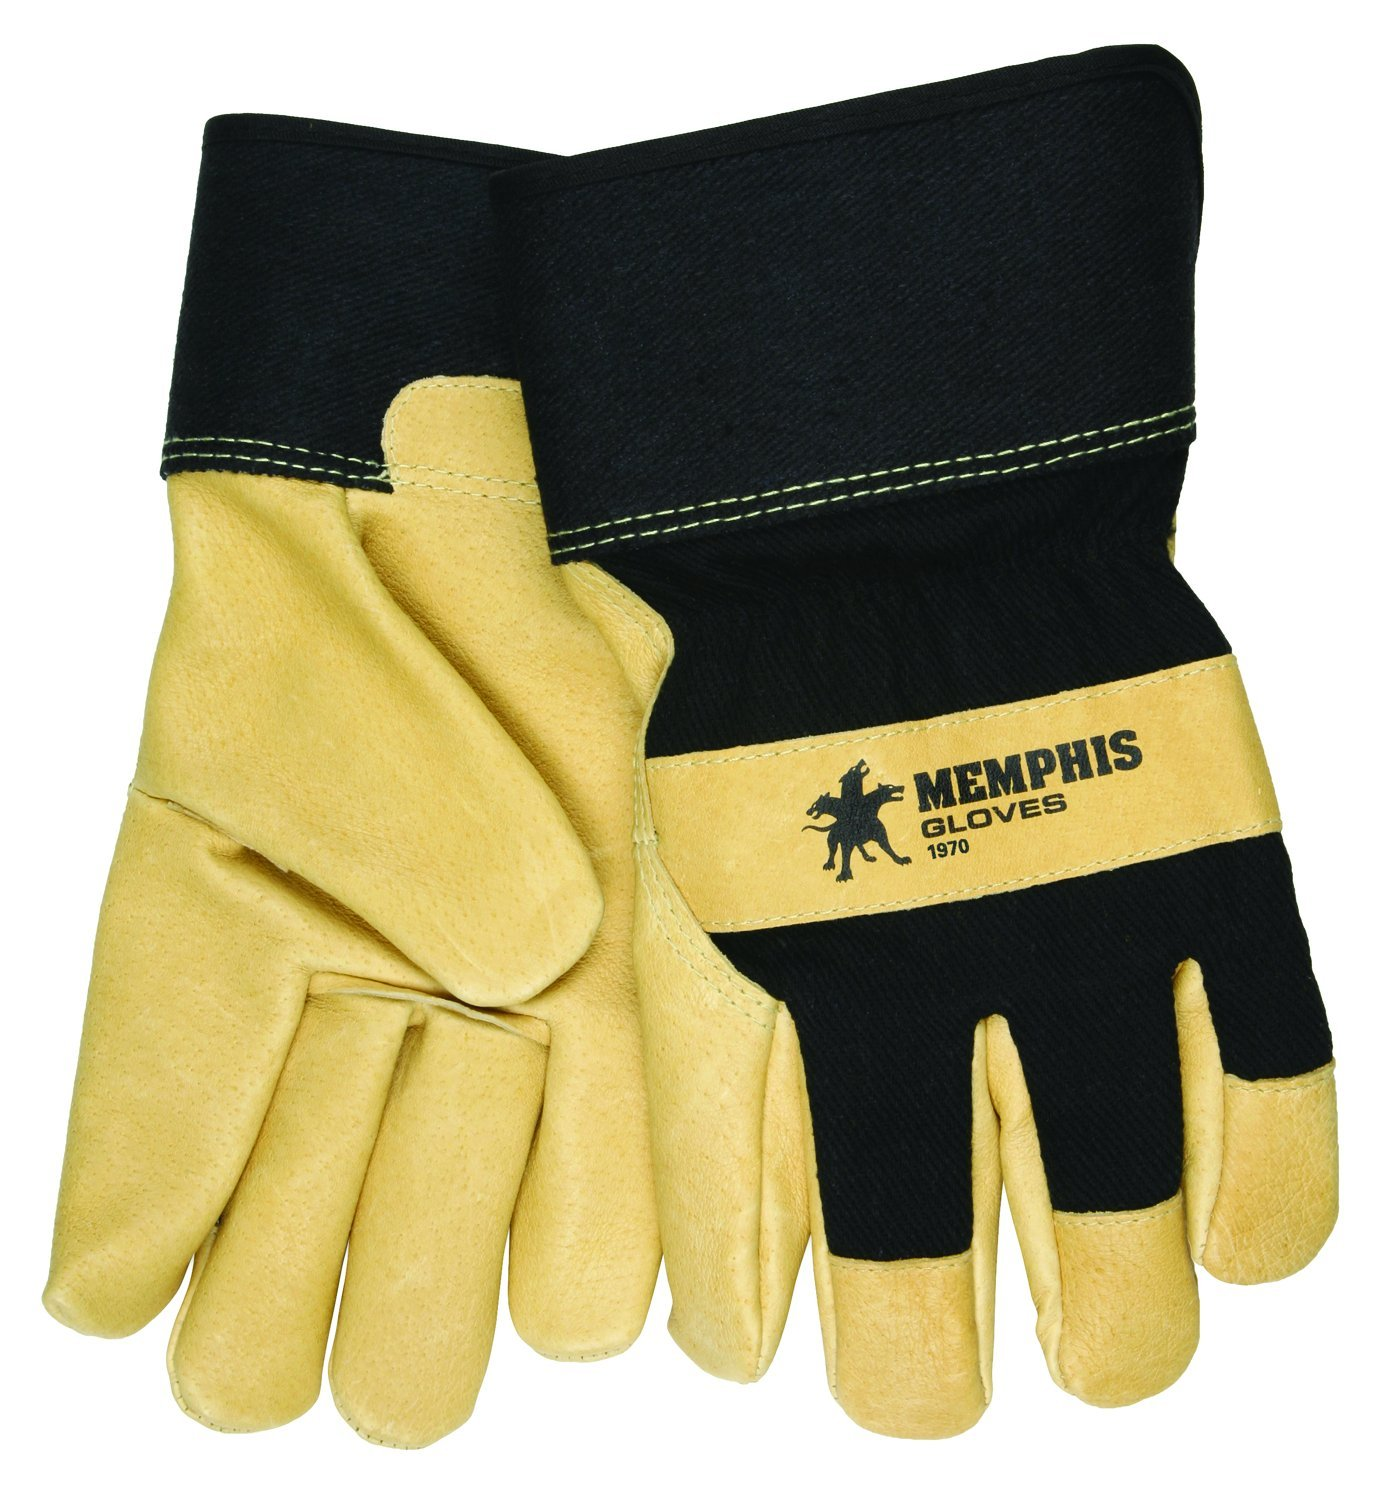 MCR Safety 1970XXL Grain Pigskin Leather Thermal Lined Gloves with 2-1/2-Inch PE Cuff, Light Yellow/Black, 2X-Large, 1-Pair